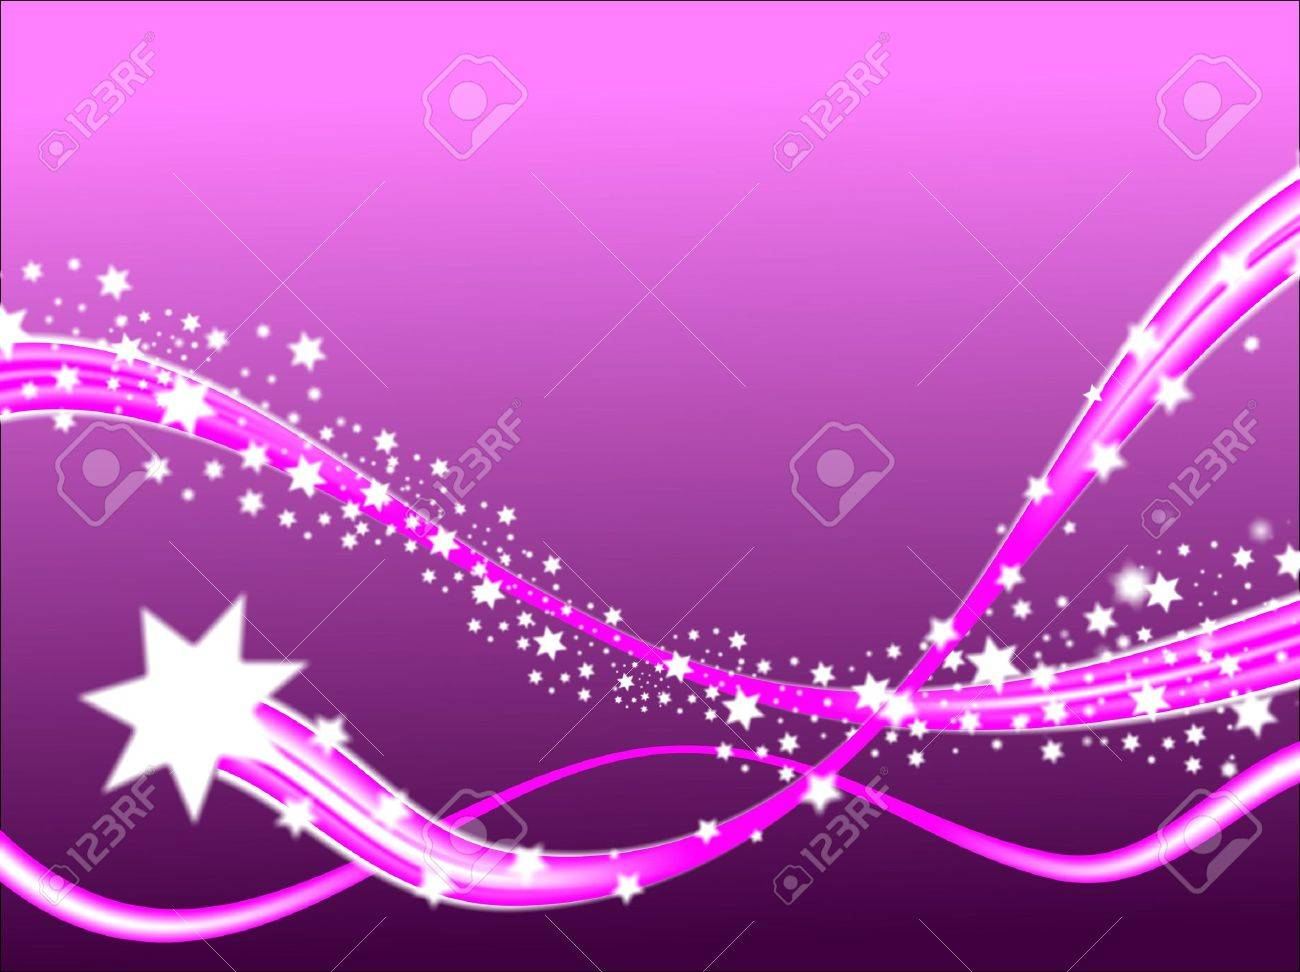 A shooting stars christmas scene on a purple background with room fro text Stock Photo - 5859935